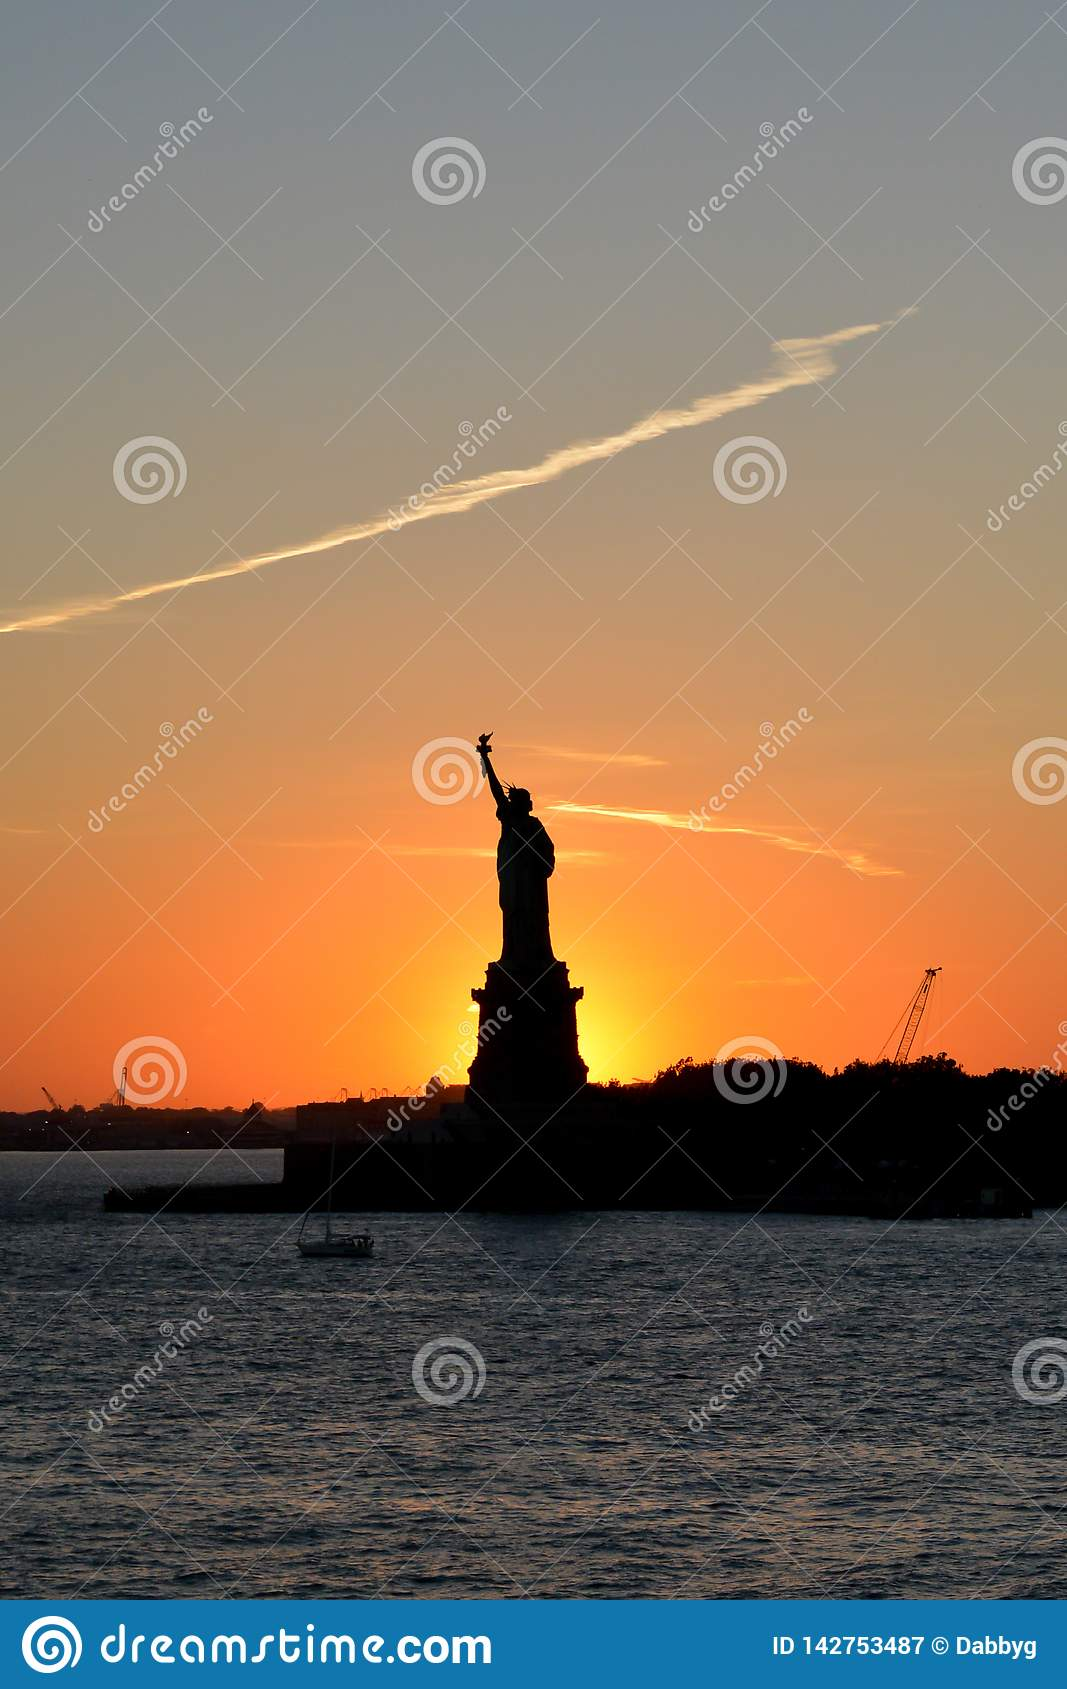 A beautiful sunset with a statue silhouetted against the sky.